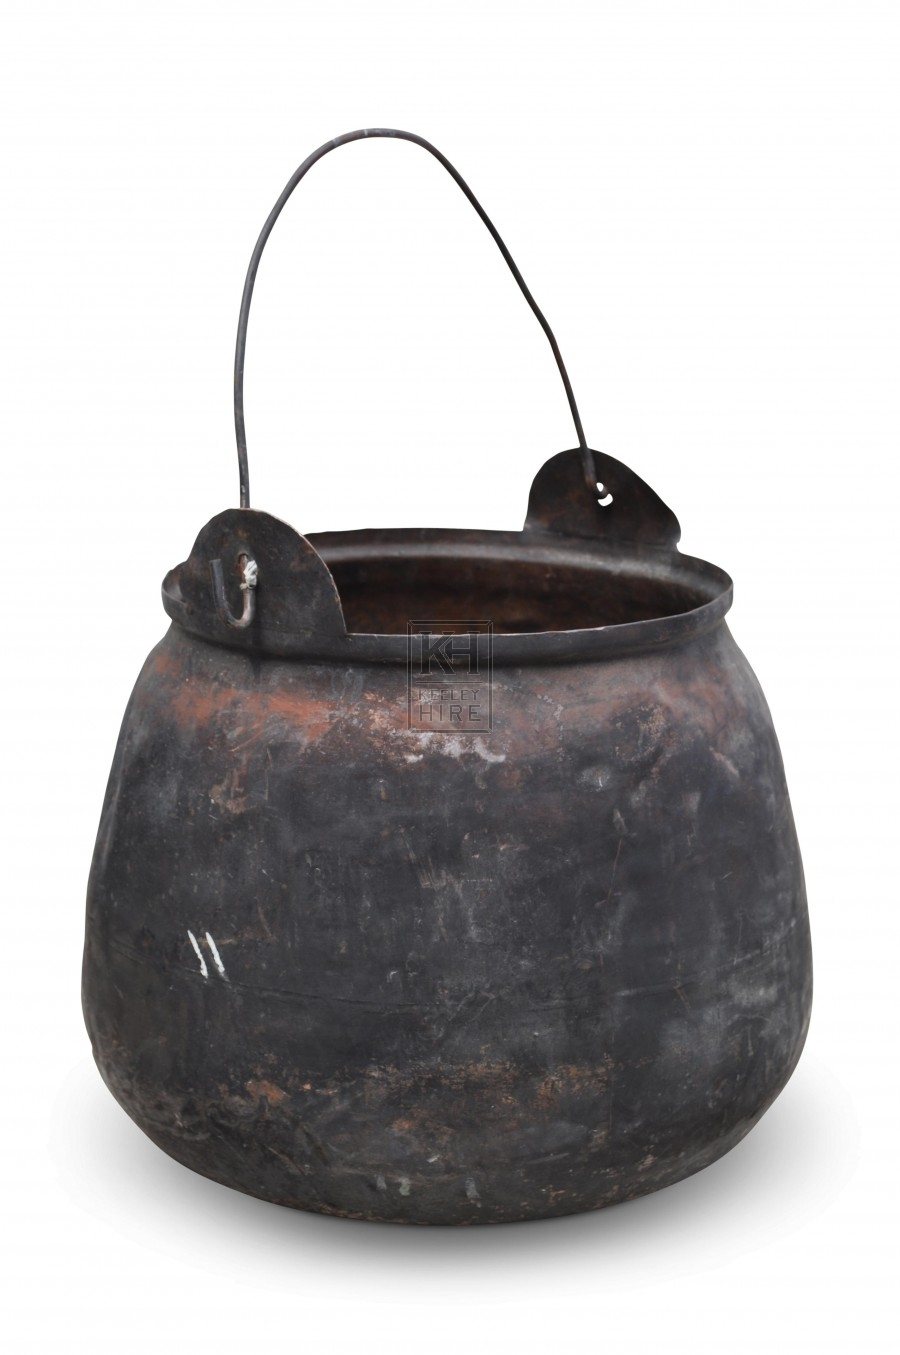 Iron cooking pot with wire handle